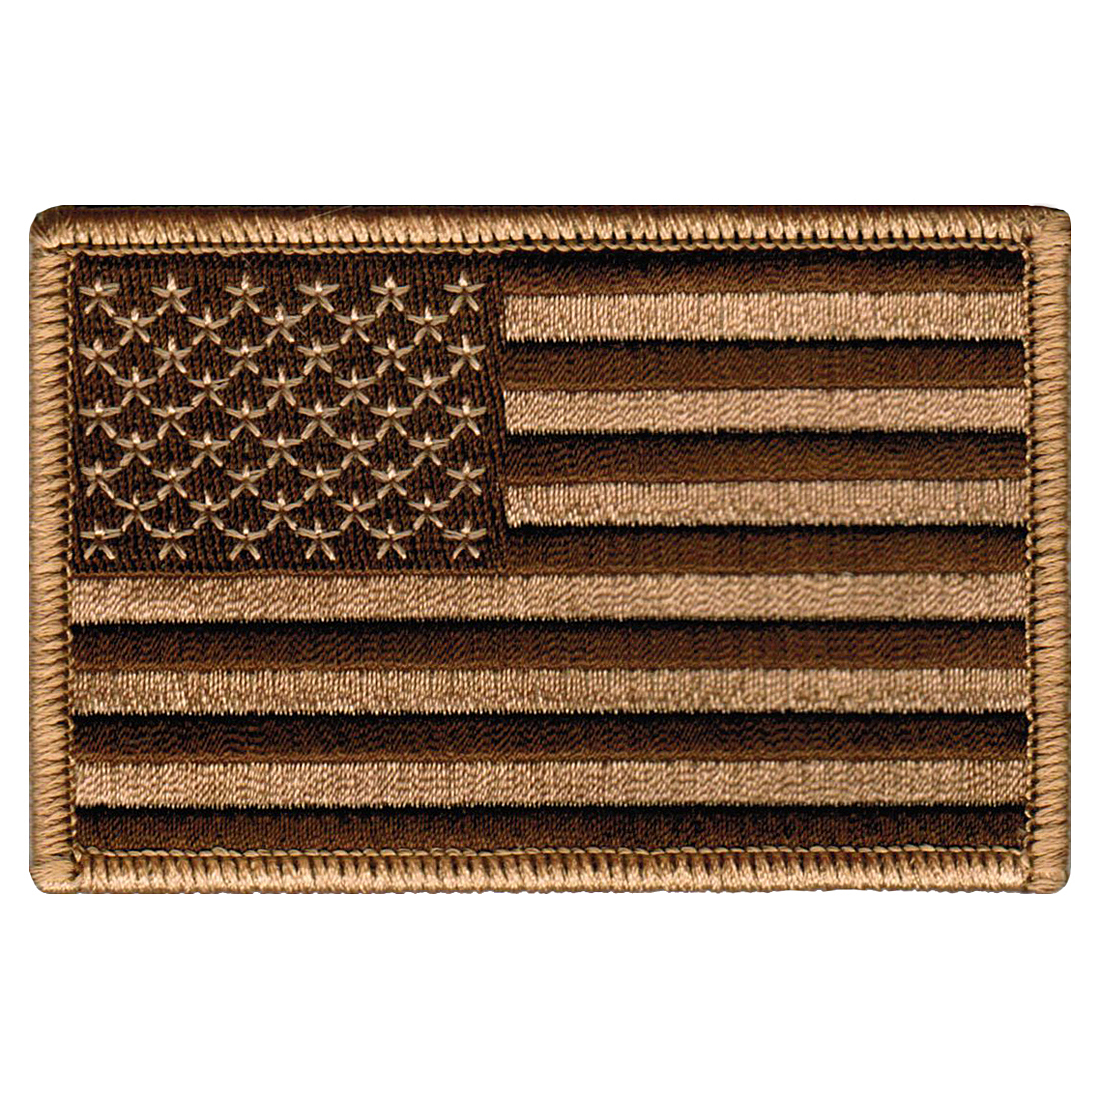 American Flag Iron-on Embroidered Patch Camo Tan